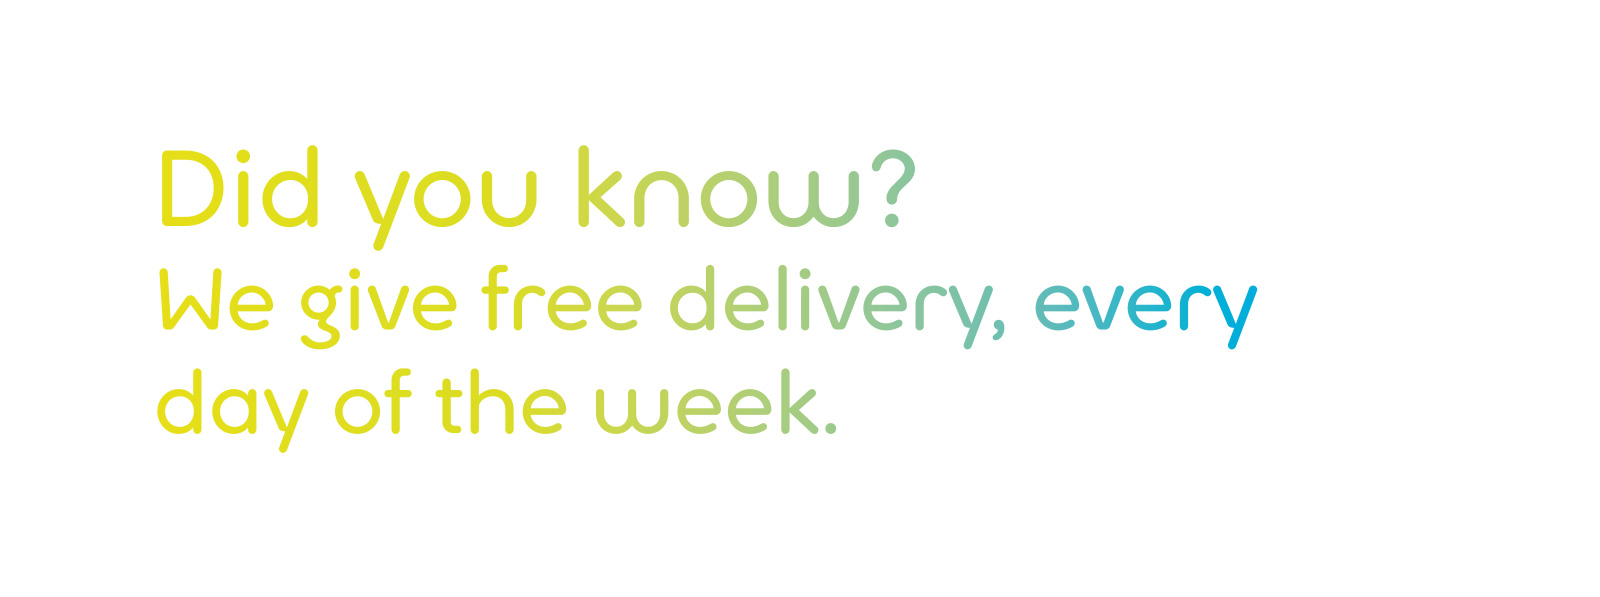 Free delivery every day of the week